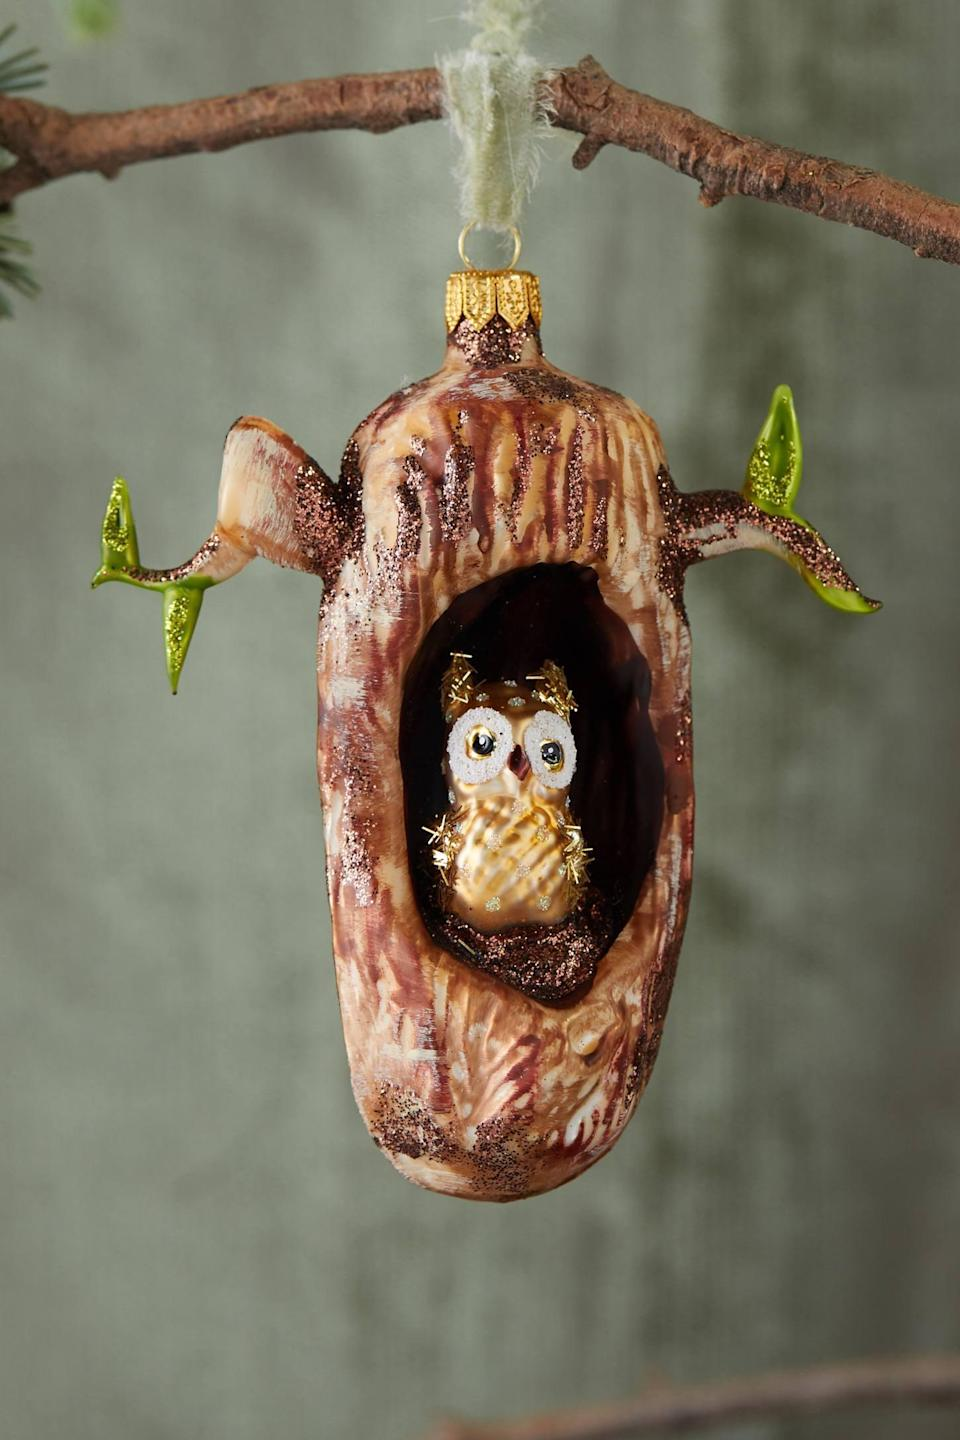 """<p>Mimic the <a href=""""https://www.popsugar.com/buy/Owl-Tree-Glass-Ornament-502212?p_name=Owl%20in%20a%20Tree%20Glass%20Ornament&retailer=anthropologie.com&pid=502212&price=48&evar1=casa%3Aus&evar9=46615300&evar98=https%3A%2F%2Fwww.popsugar.com%2Fhome%2Fphoto-gallery%2F46615300%2Fimage%2F46767570%2FOwl-in-Tree-Glass-Ornament&list1=shopping%2Canthropologie%2Choliday%2Cchristmas%2Cchristmas%20decorations%2Choliday%20decor%2Chome%20shopping&prop13=mobile&pdata=1"""" rel=""""nofollow noopener"""" class=""""link rapid-noclick-resp"""" target=""""_blank"""" data-ylk=""""slk:Owl in a Tree Glass Ornament"""">Owl in a Tree Glass Ornament</a> ($48) by hanging it in your own tree; it'll look so cute.</p>"""